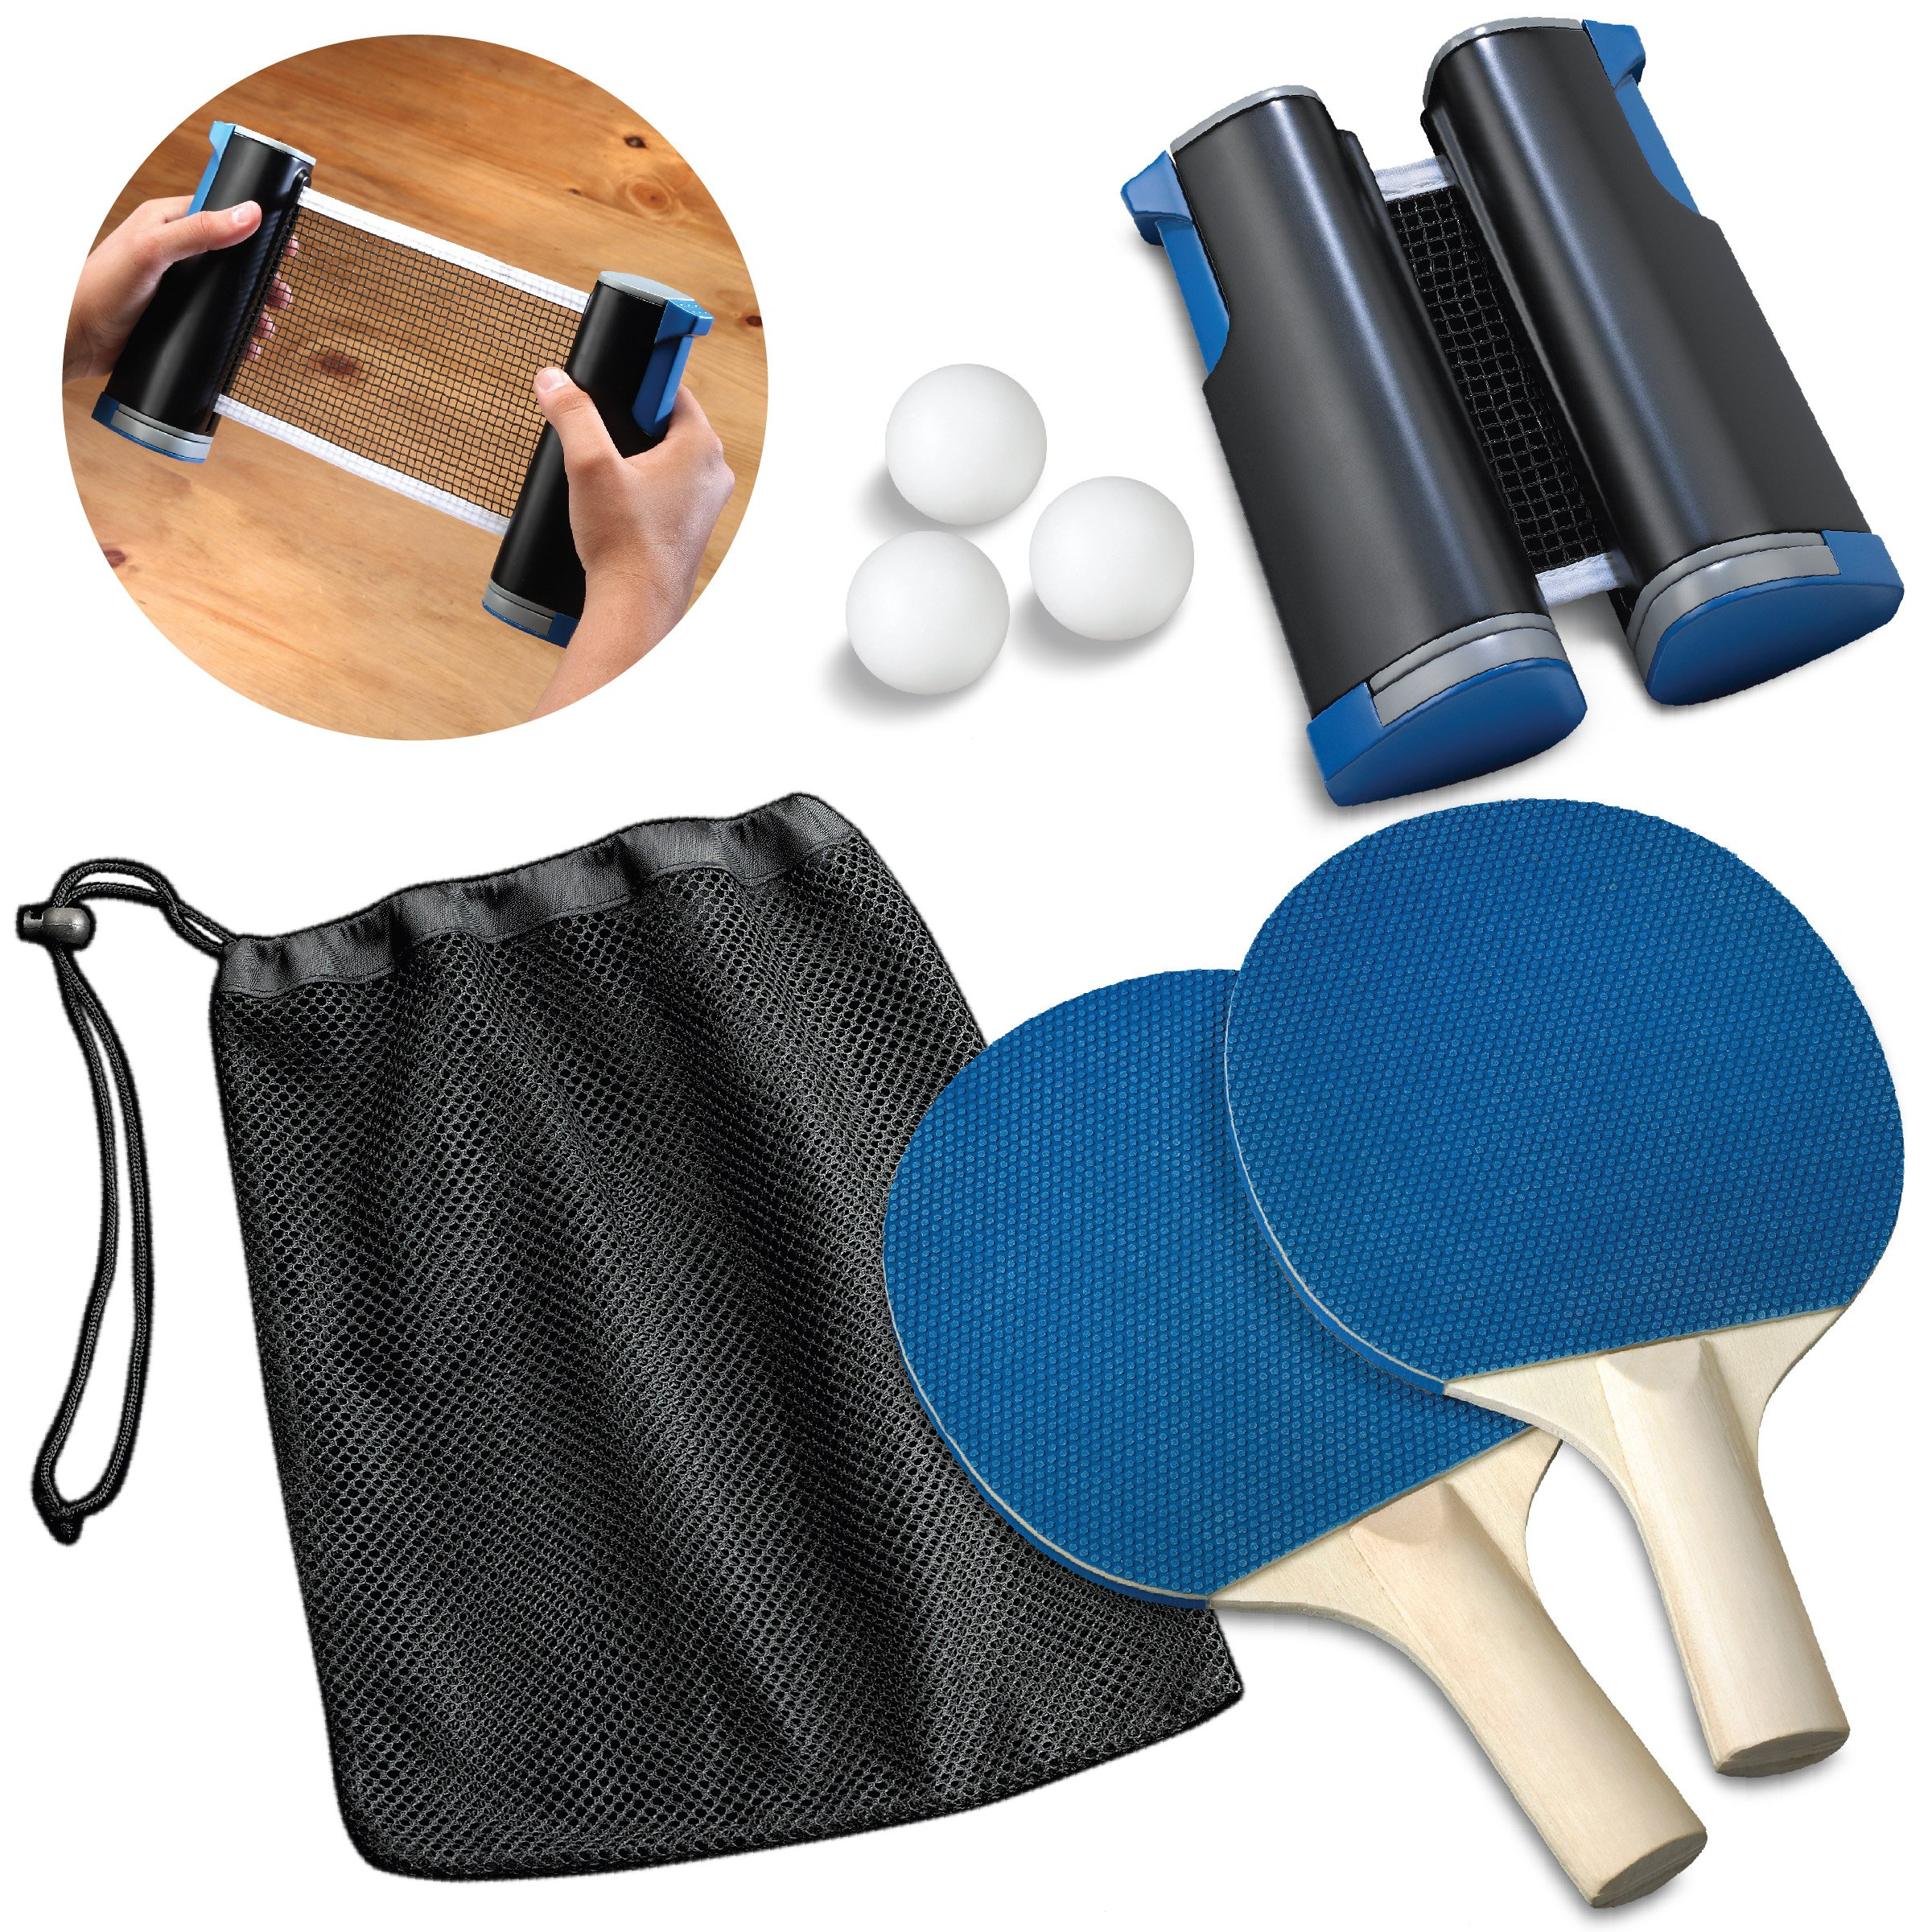 Black Series Retractable Table Tennis Ping Pong Equipment Set with Paddle/Racket x2, Net and Post, Balls x3, Attaches to Any Dining Table Top, for Kids and Adults, Includes Mesh Carrying Case/Pouch by Black Series